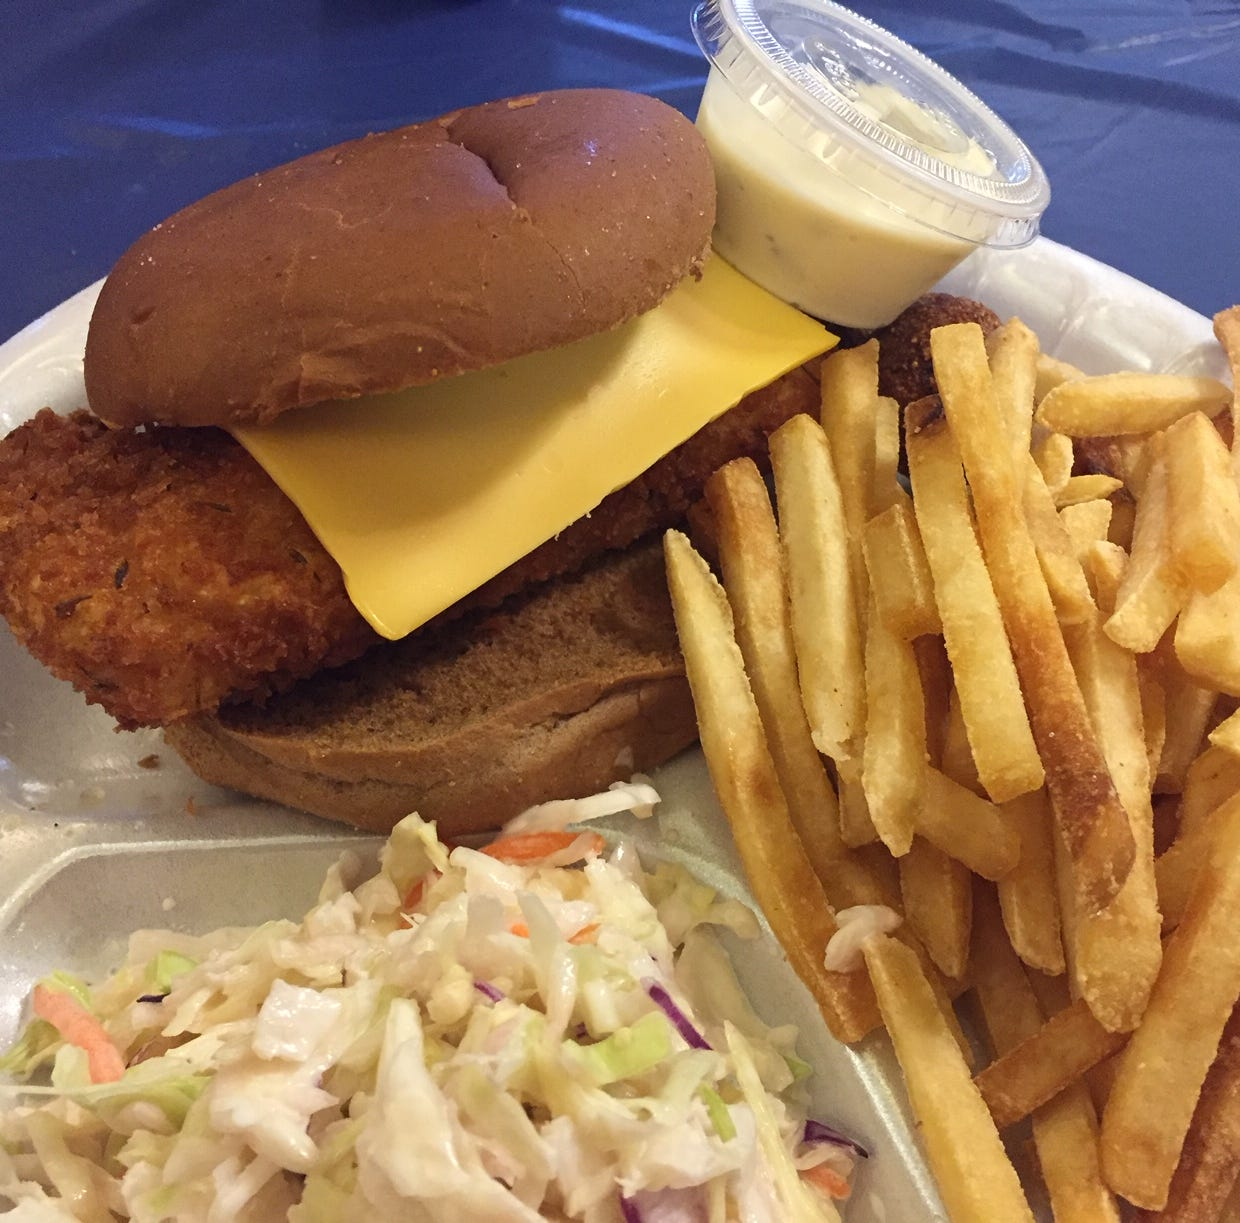 Fish sandwich of the week: Behold the Magnificod